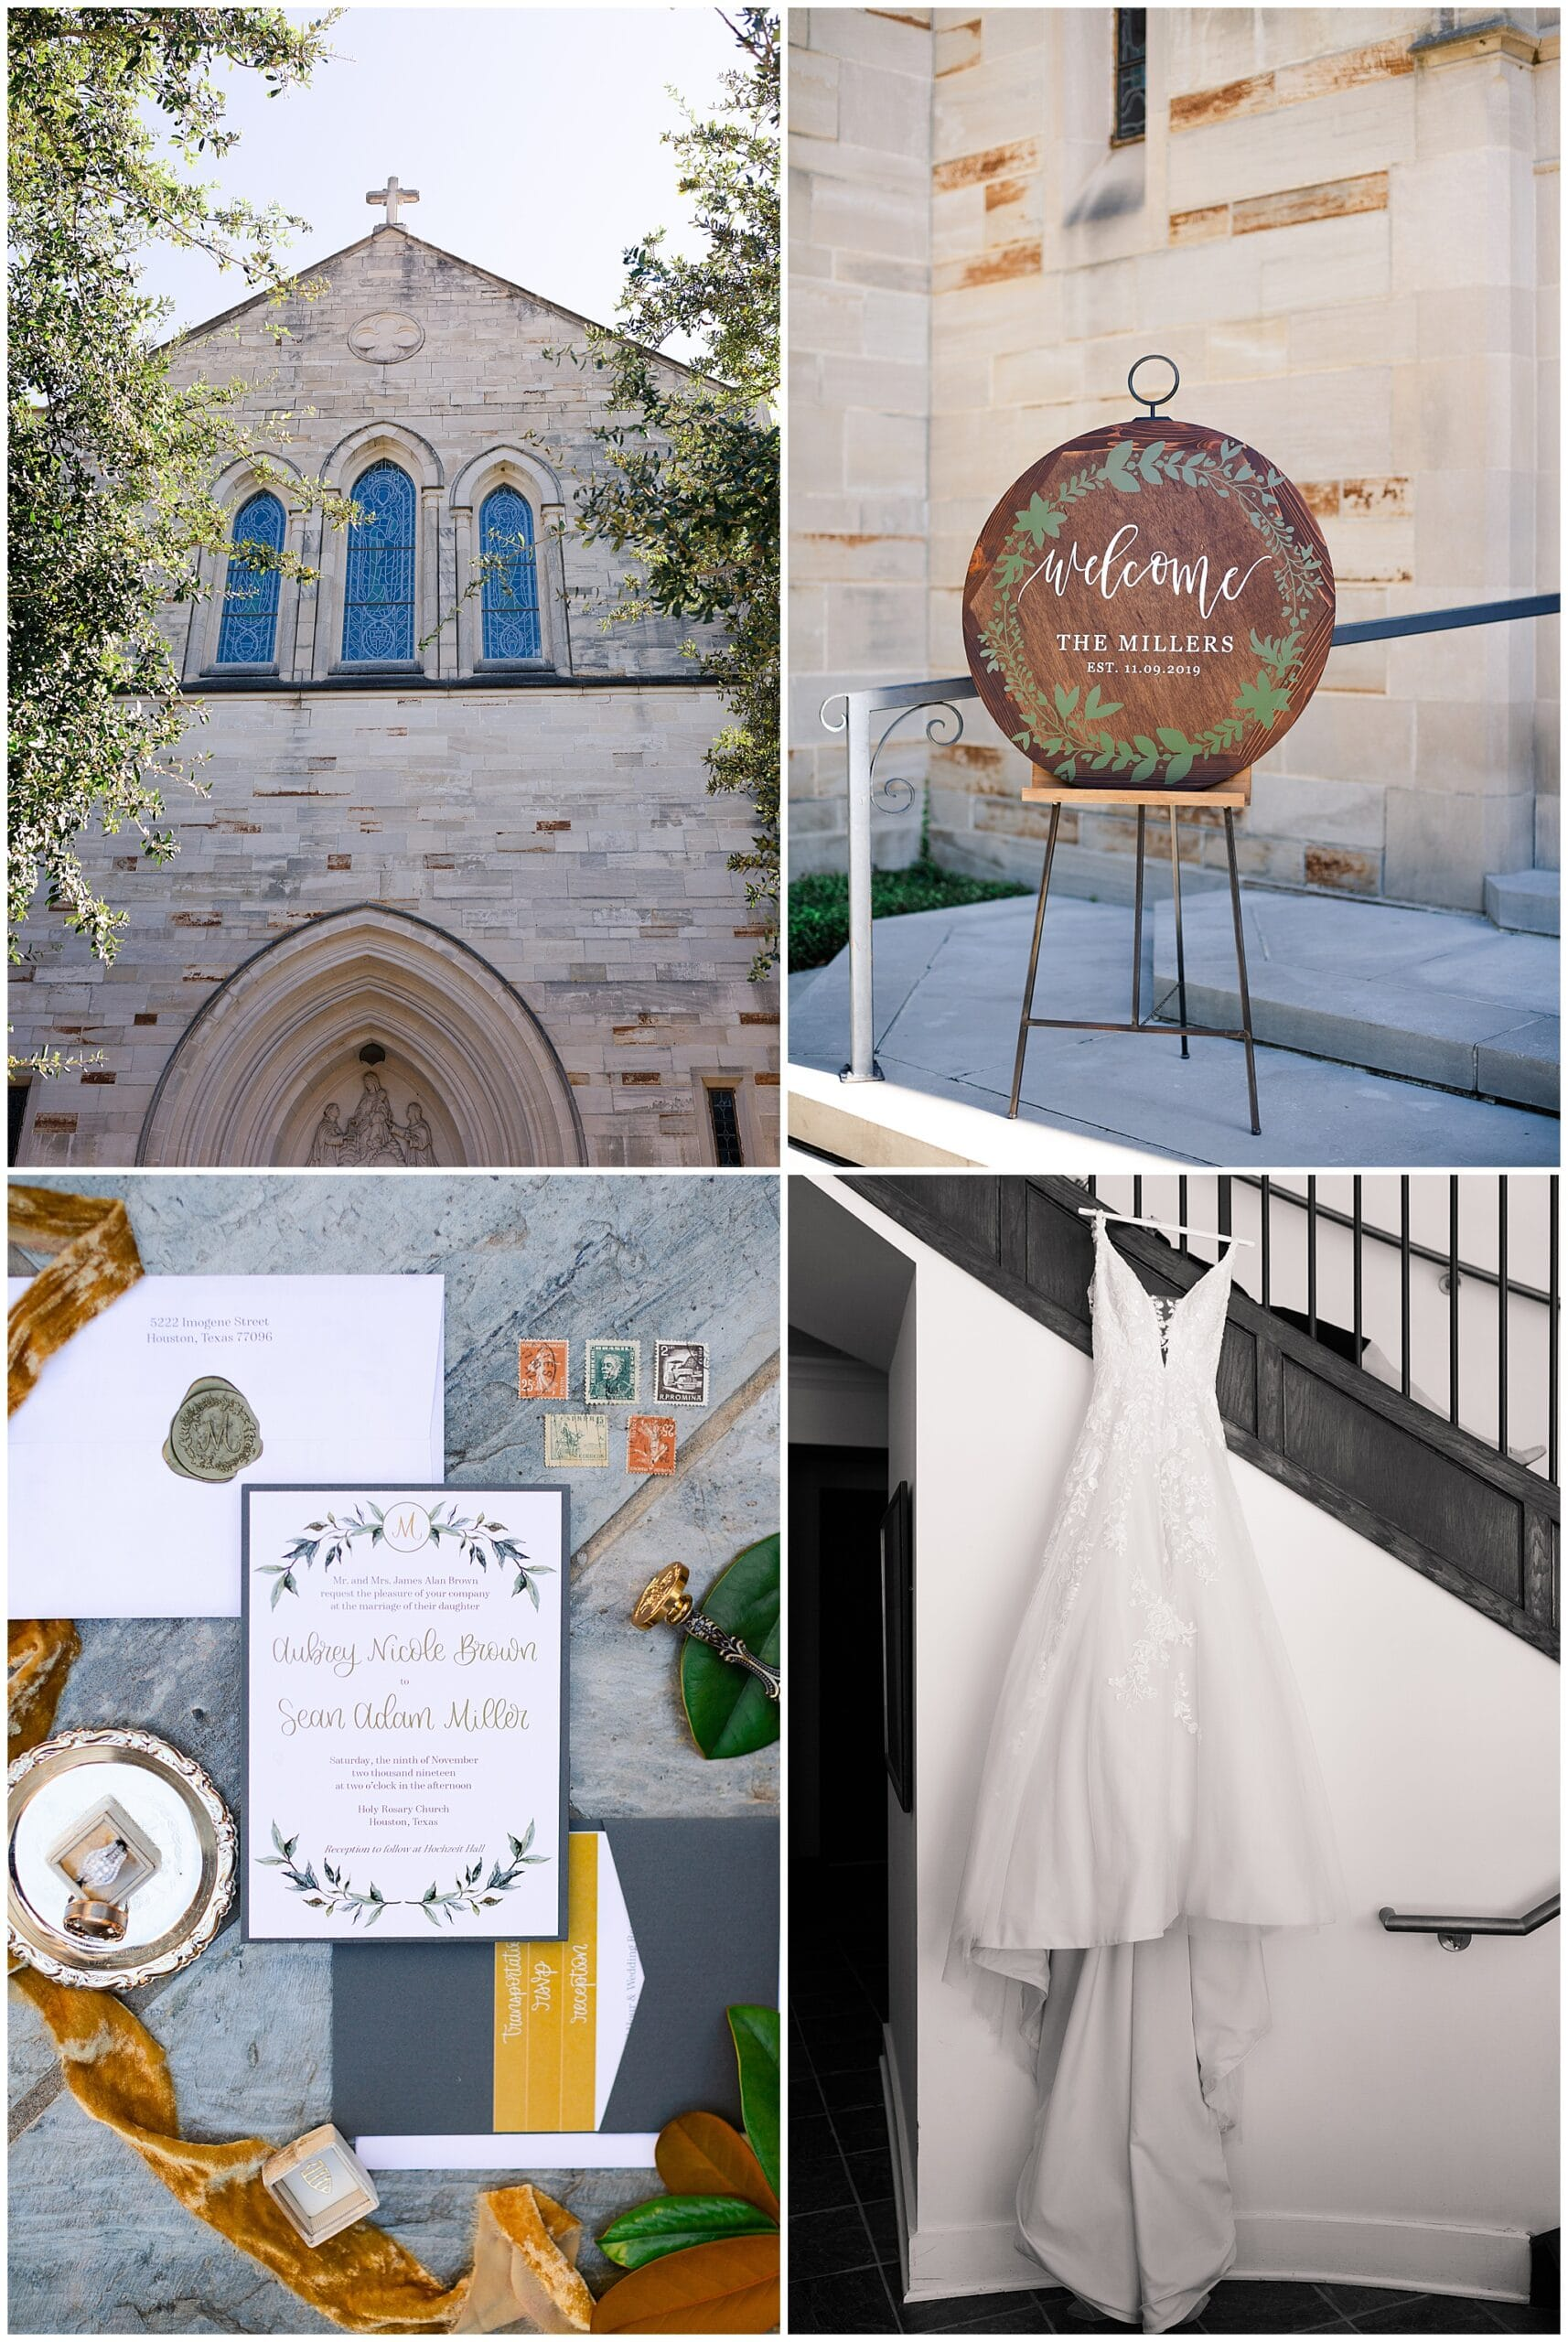 wedding gown, wedding invitation at Holy Rosary Catholic Church captured by Swish and Click Photography